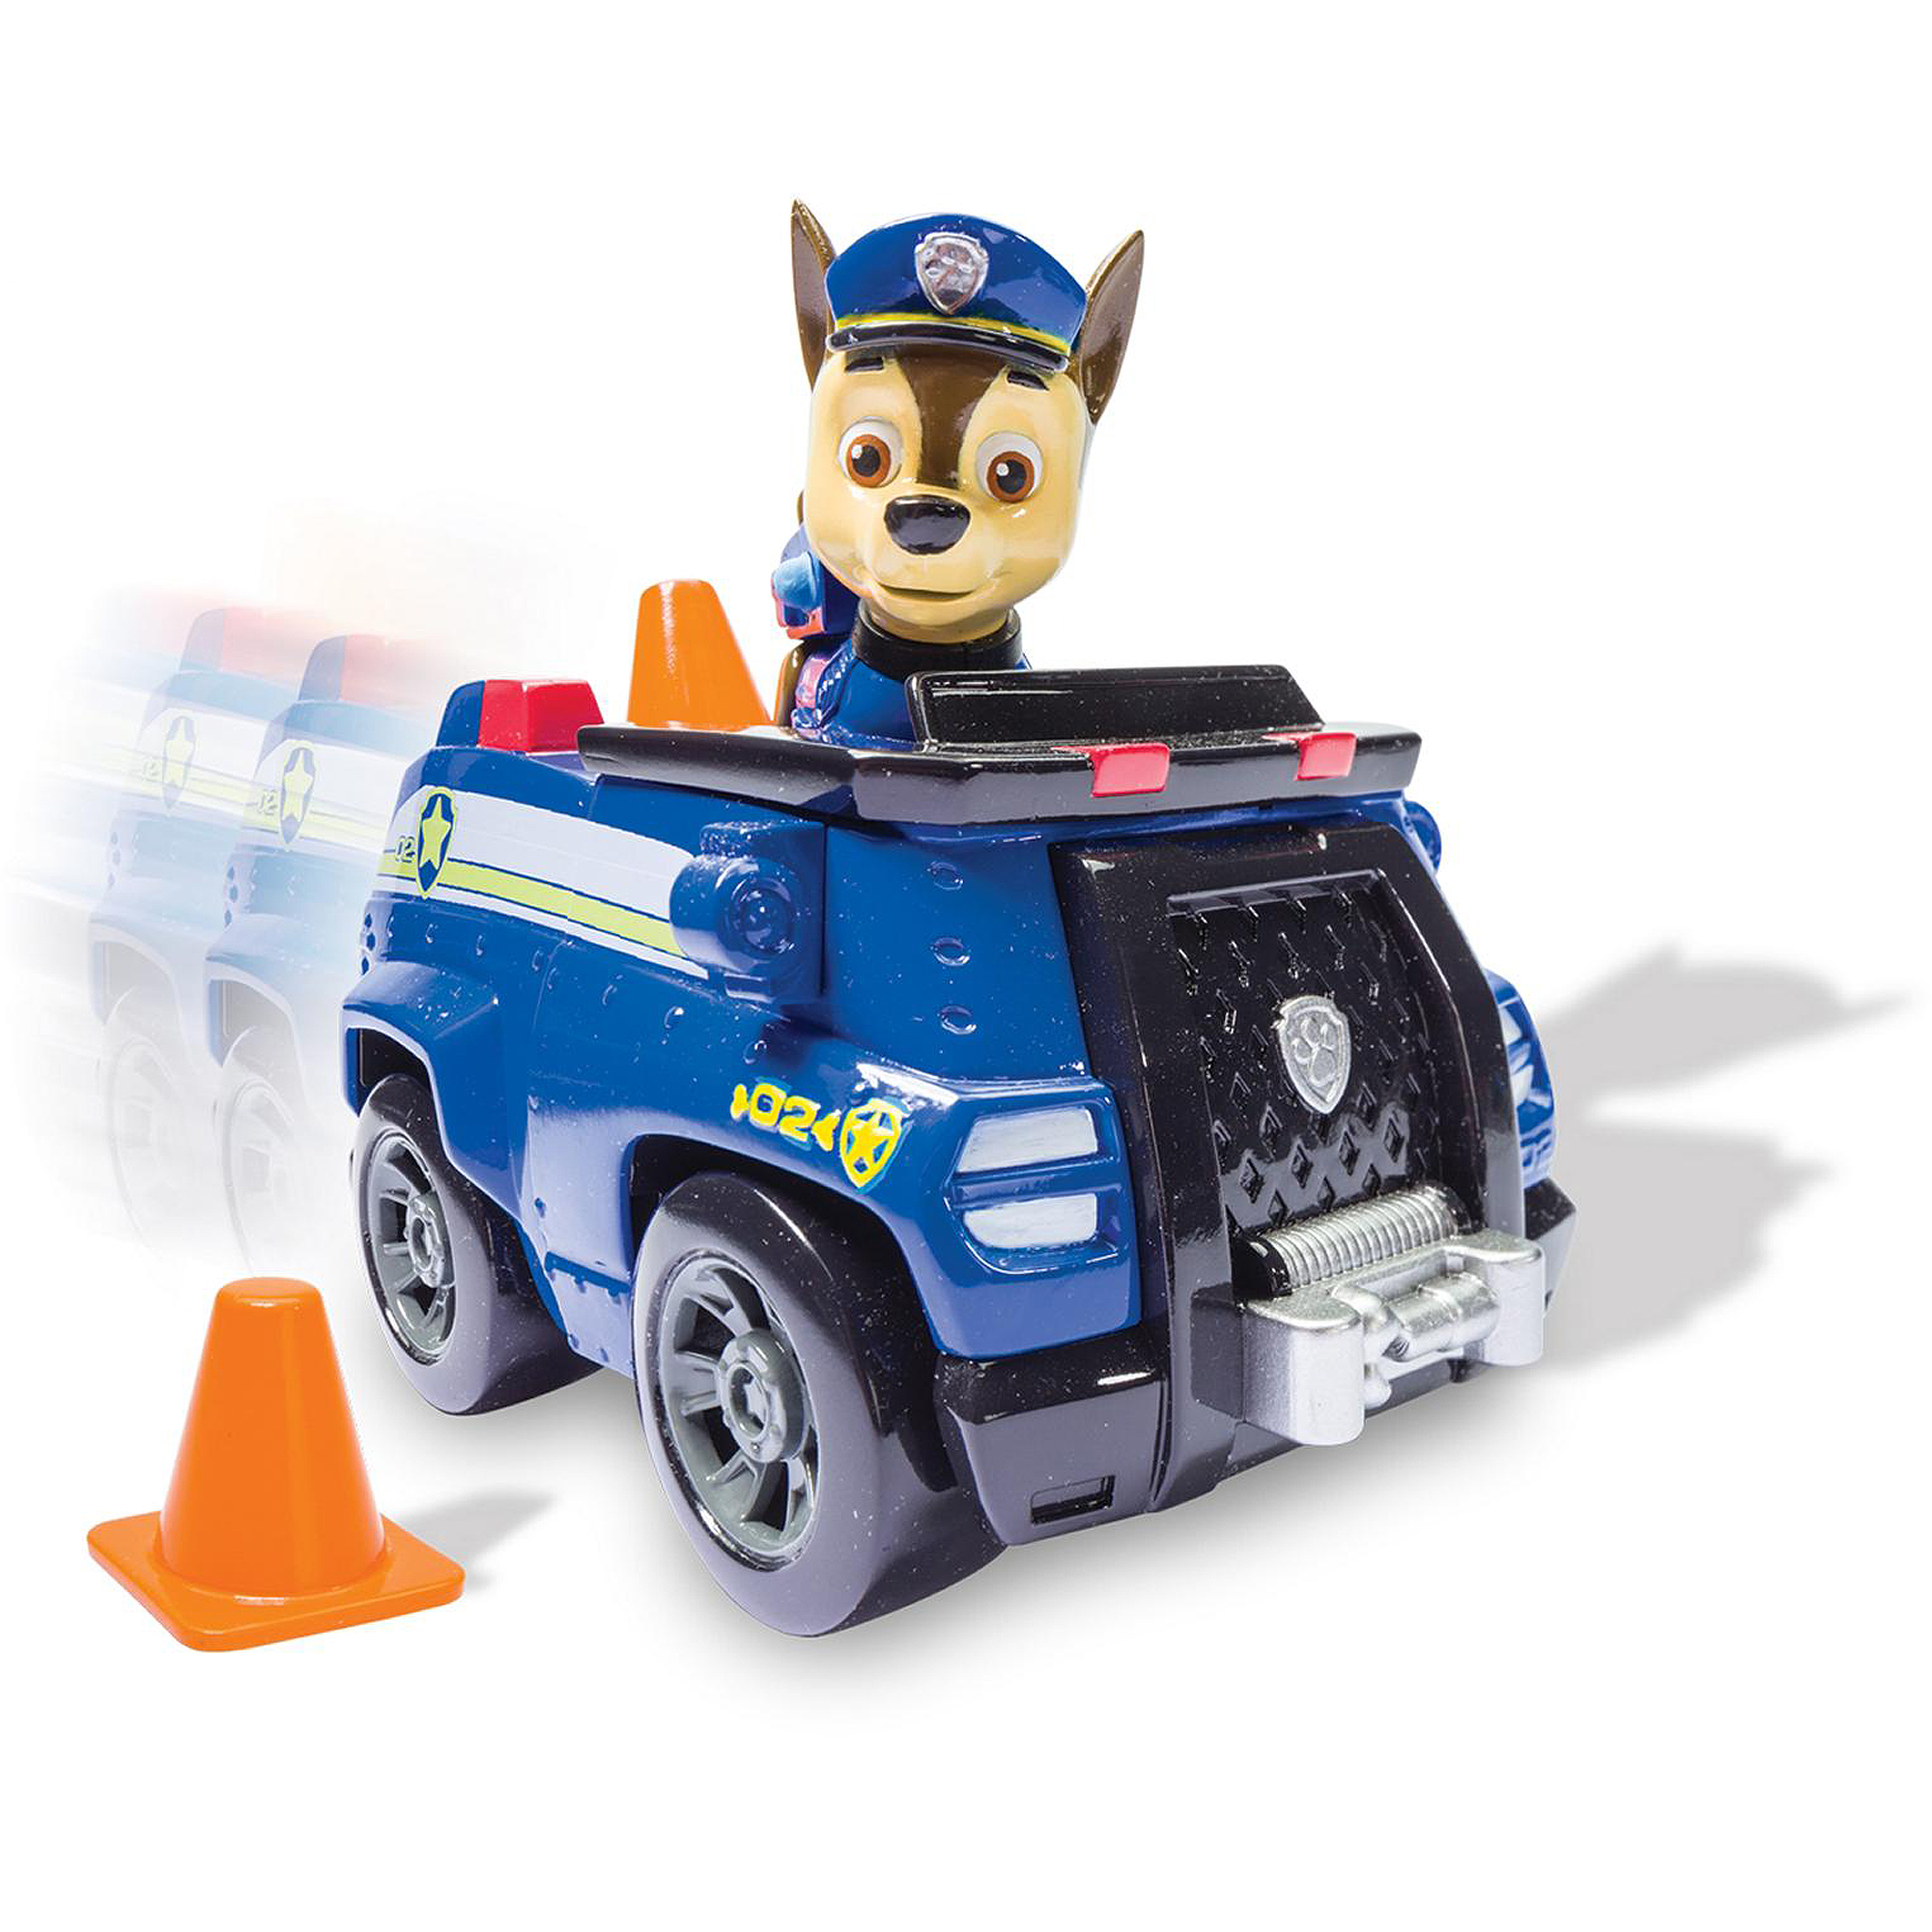 Nickelodeon Paw Patrol - Chase's Cruiser, Vehicle and Figure